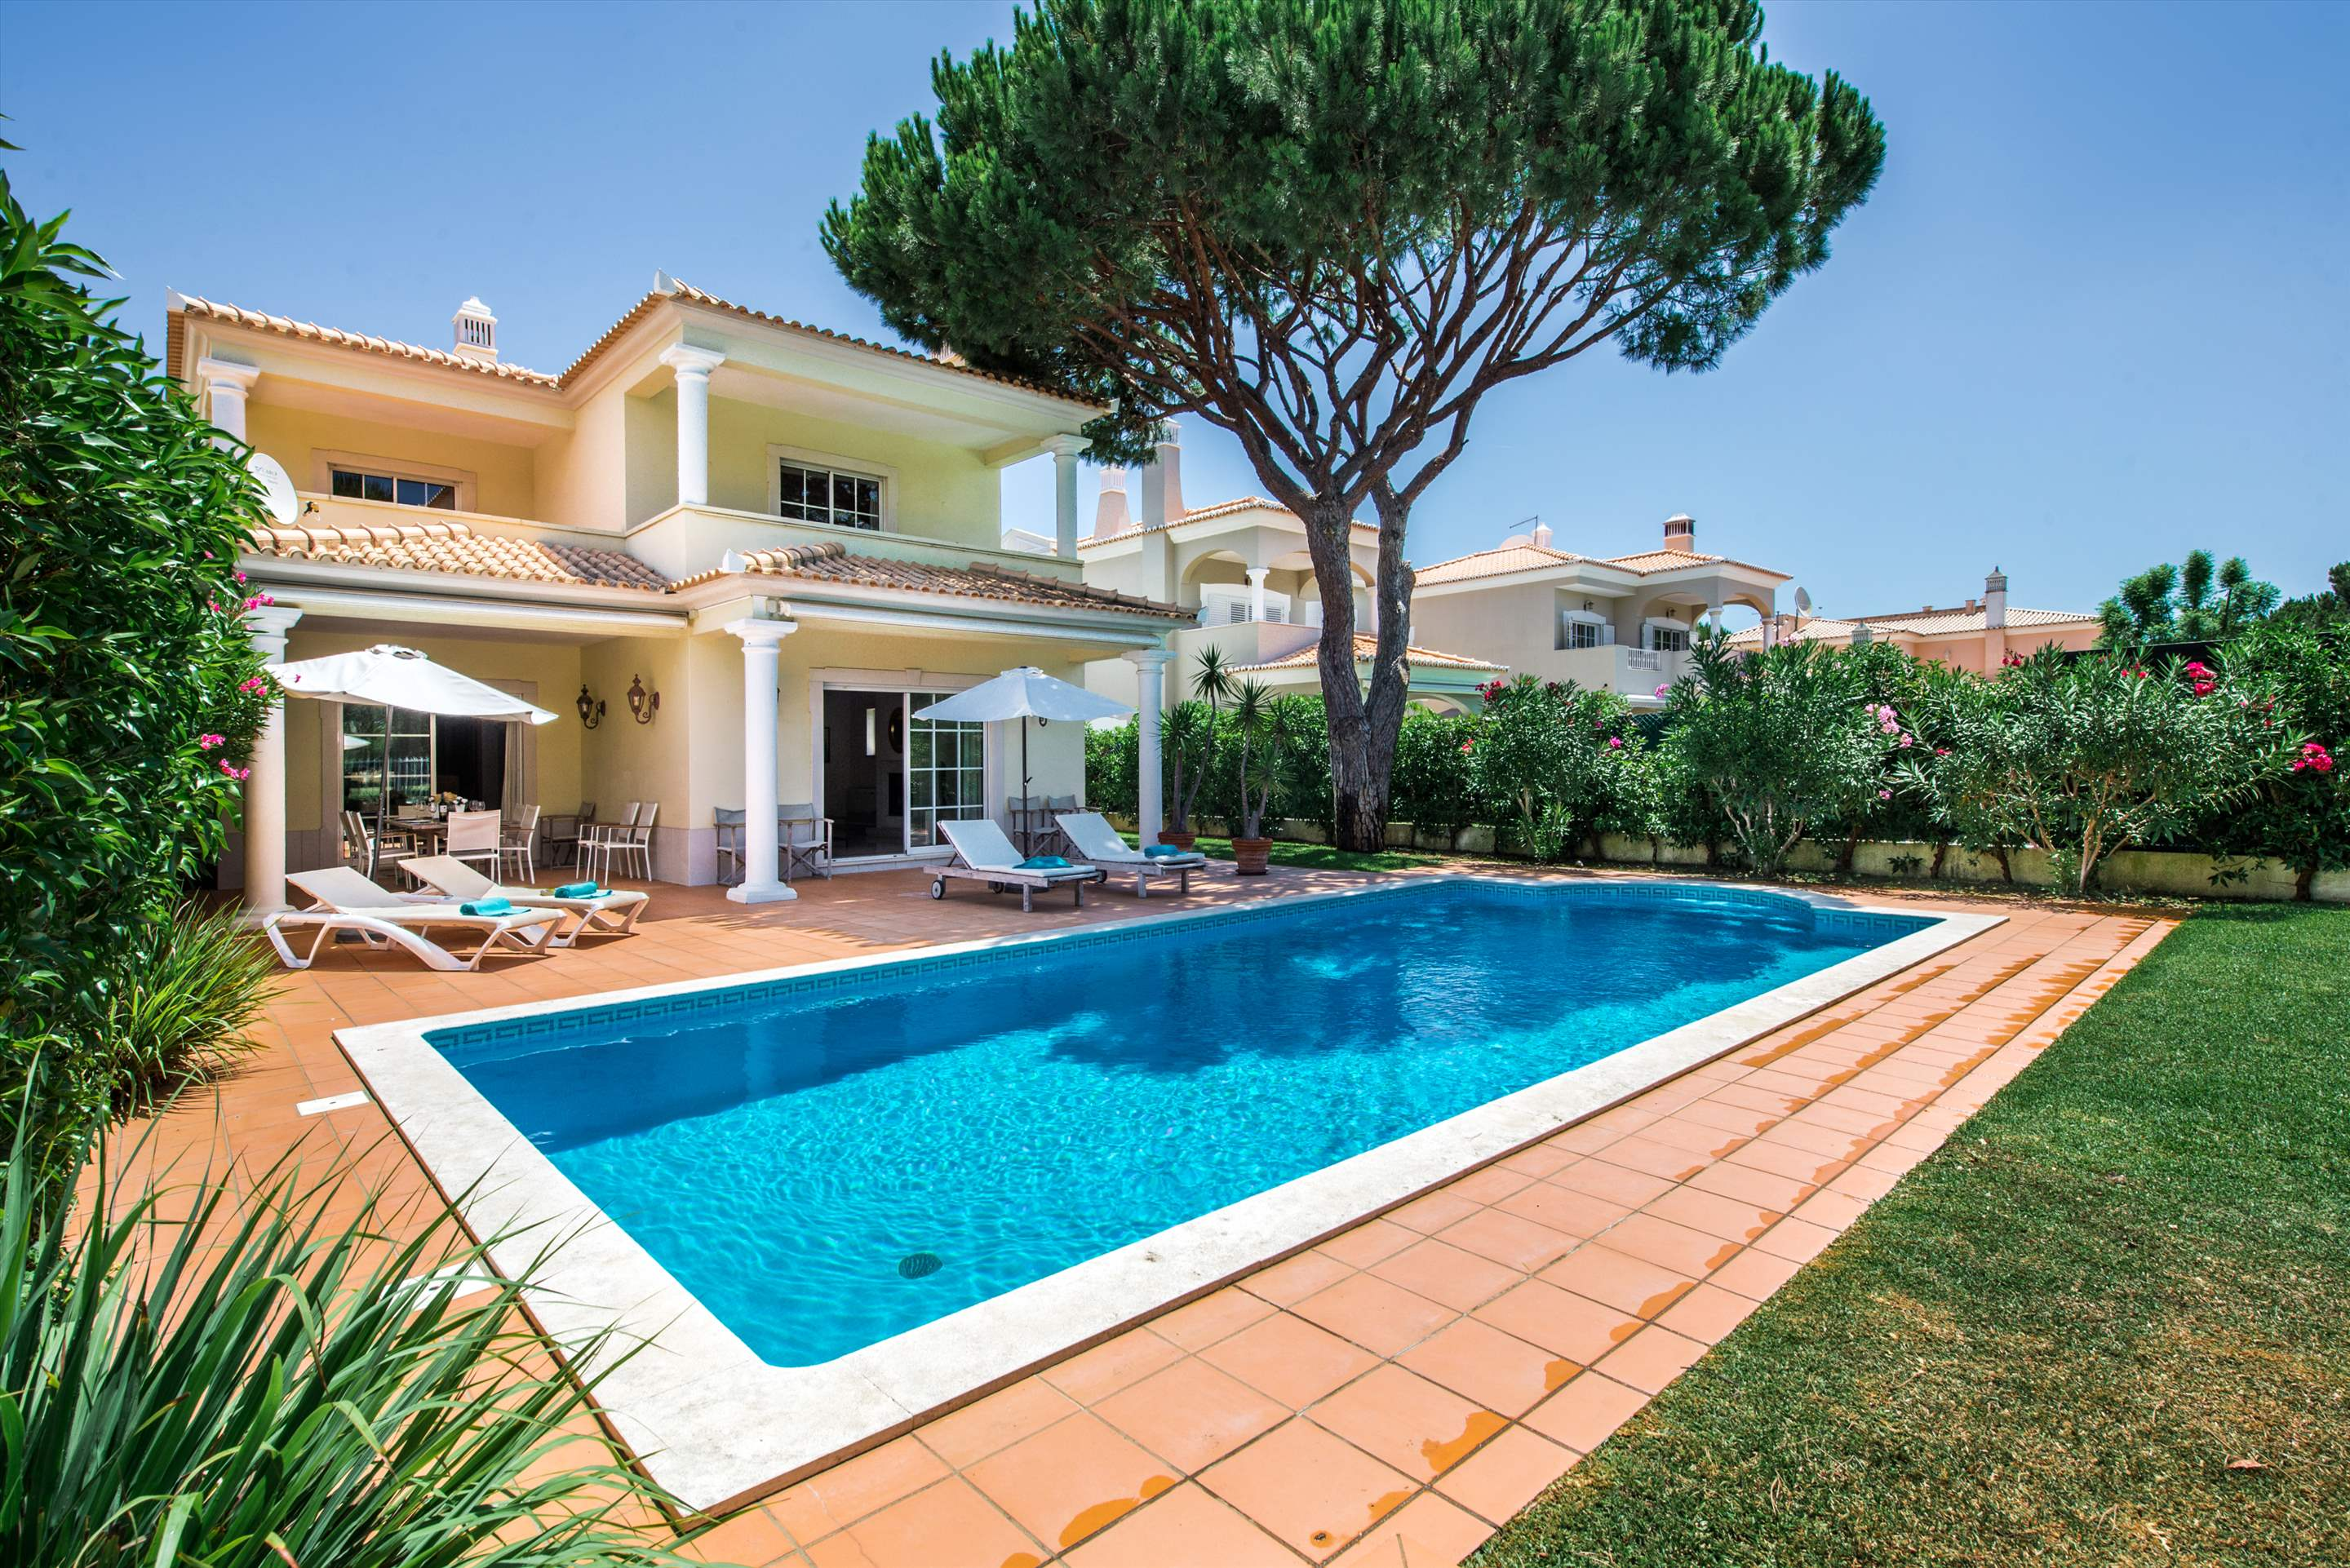 Vivenda Anita 1, 4 bedroom villa in Vilamoura Area, Algarve